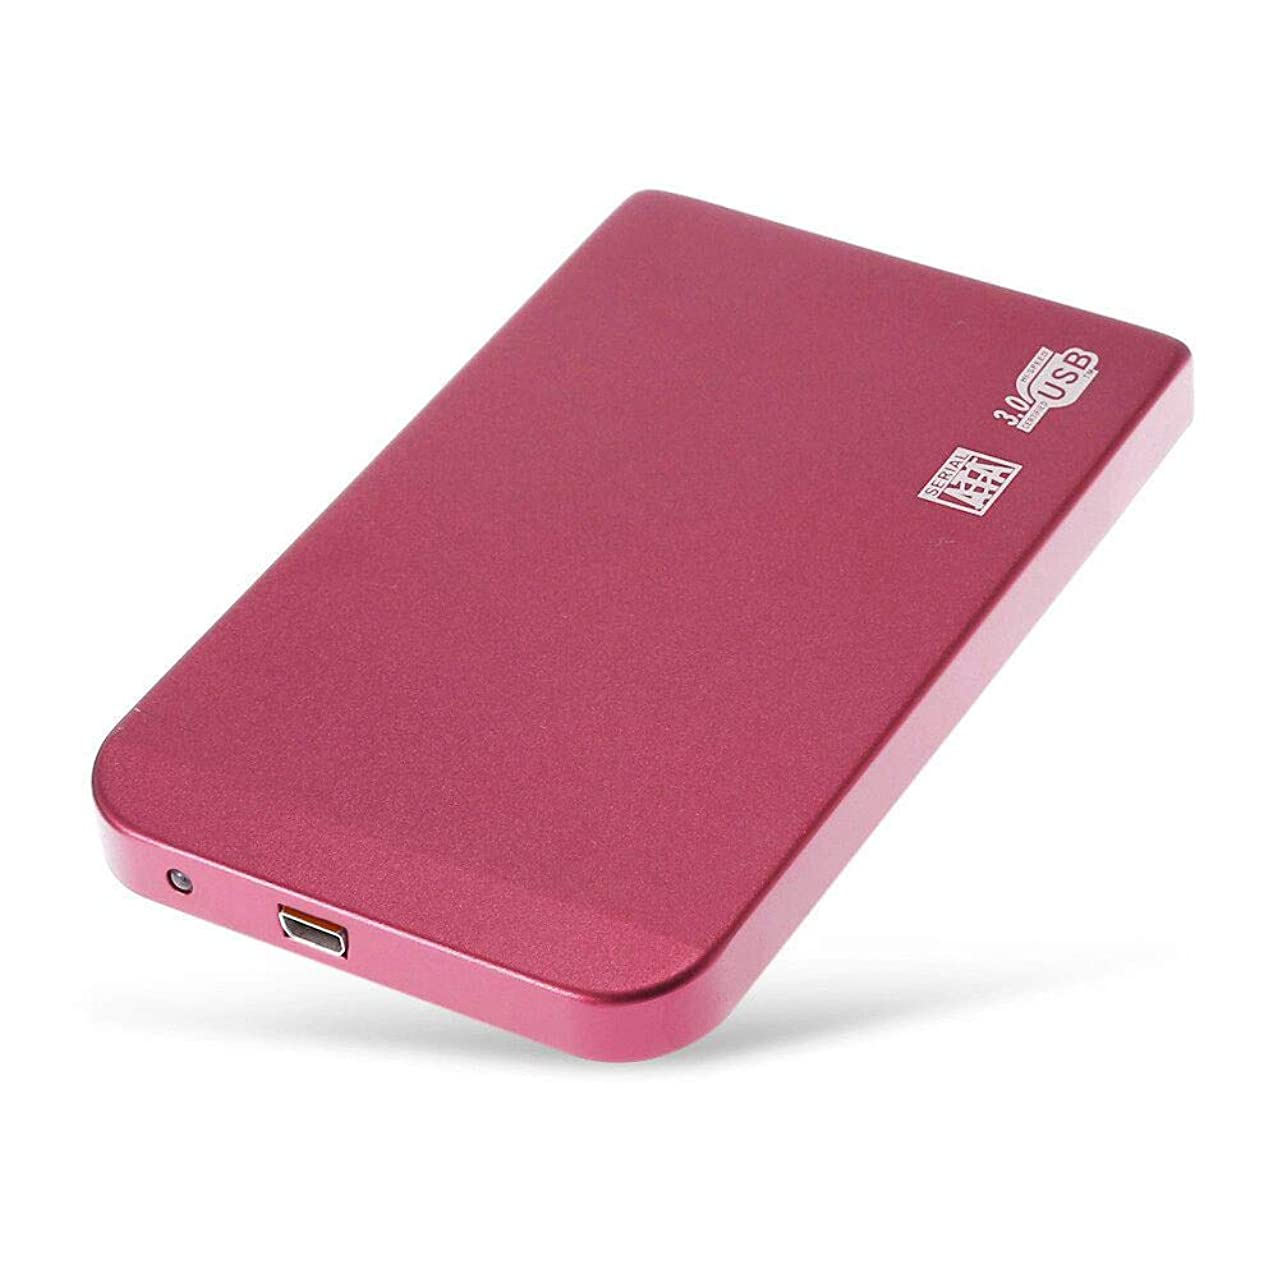 Seamount 3TBUSB 3.0 External Hard Drives with LED Light Disply, High-Speed and Portable Desktop Mobile Hard Disk Case (Red)